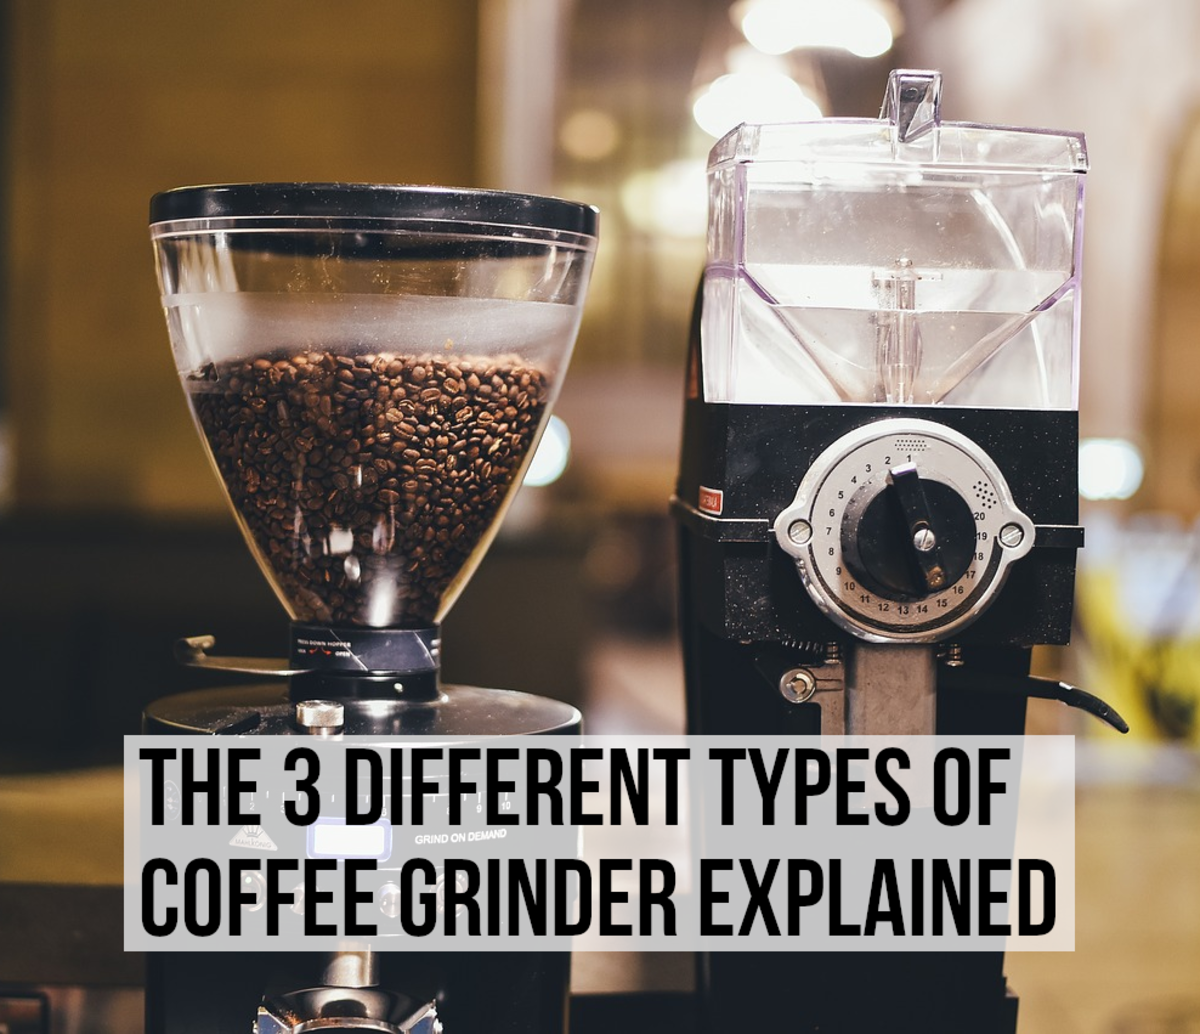 Blade vs. Burr vs. Manual: The Complete Coffee Grinder Guide